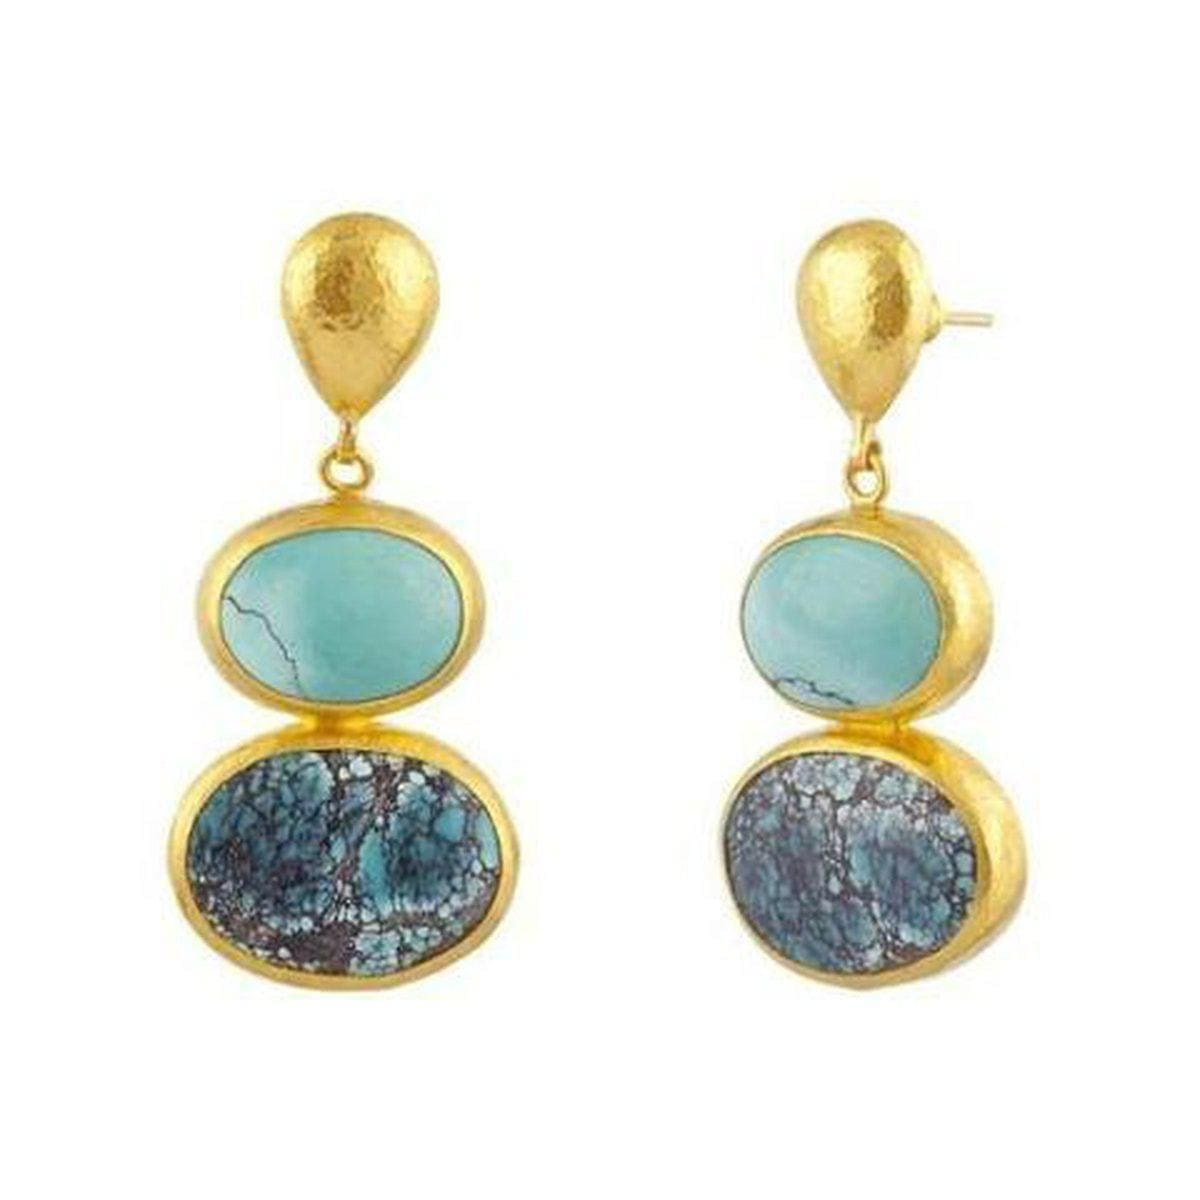 Amulet Hue 24K Gold Turquoise Earrings - E-U20107-TQ-GURHAN-Renee Taylor Gallery